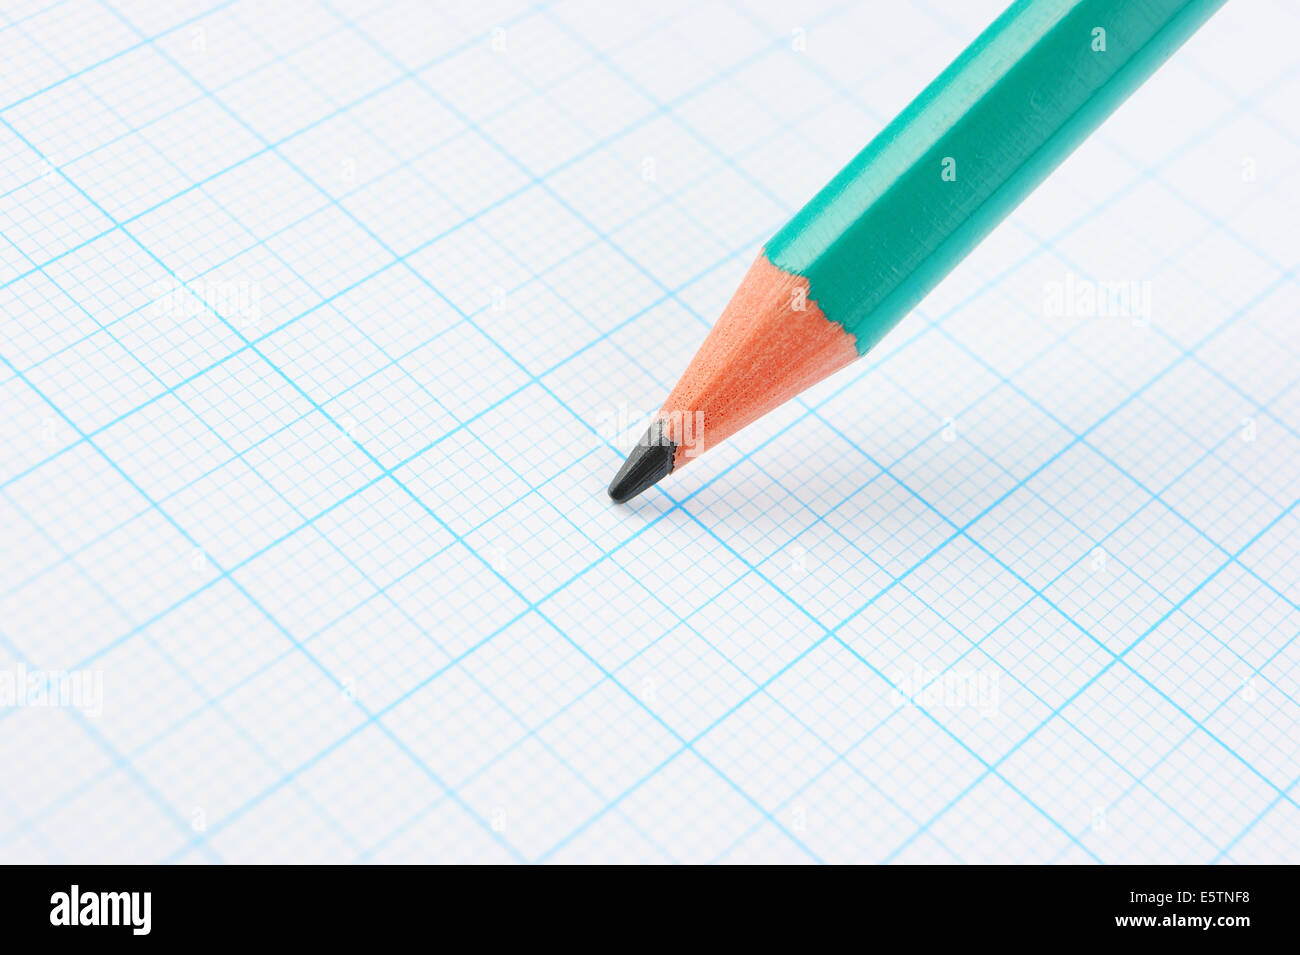 drawing pencil on graph paper stock photo 72458492 alamy